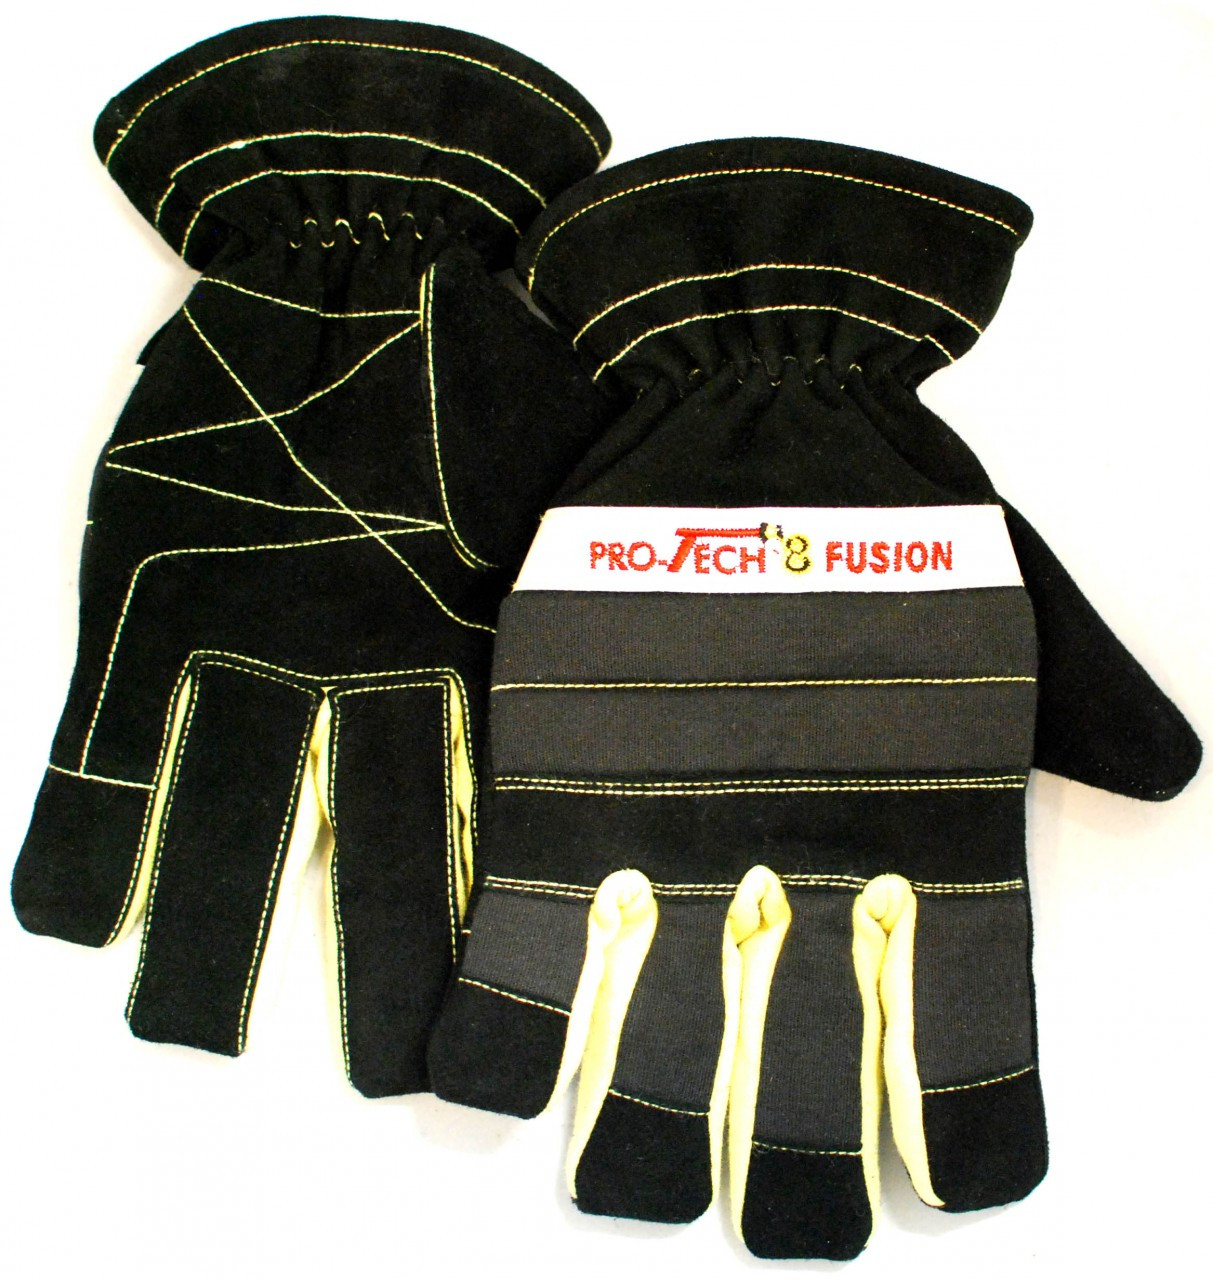 Pro-Tech 8 Fusion Structural Glove - Long Cuff